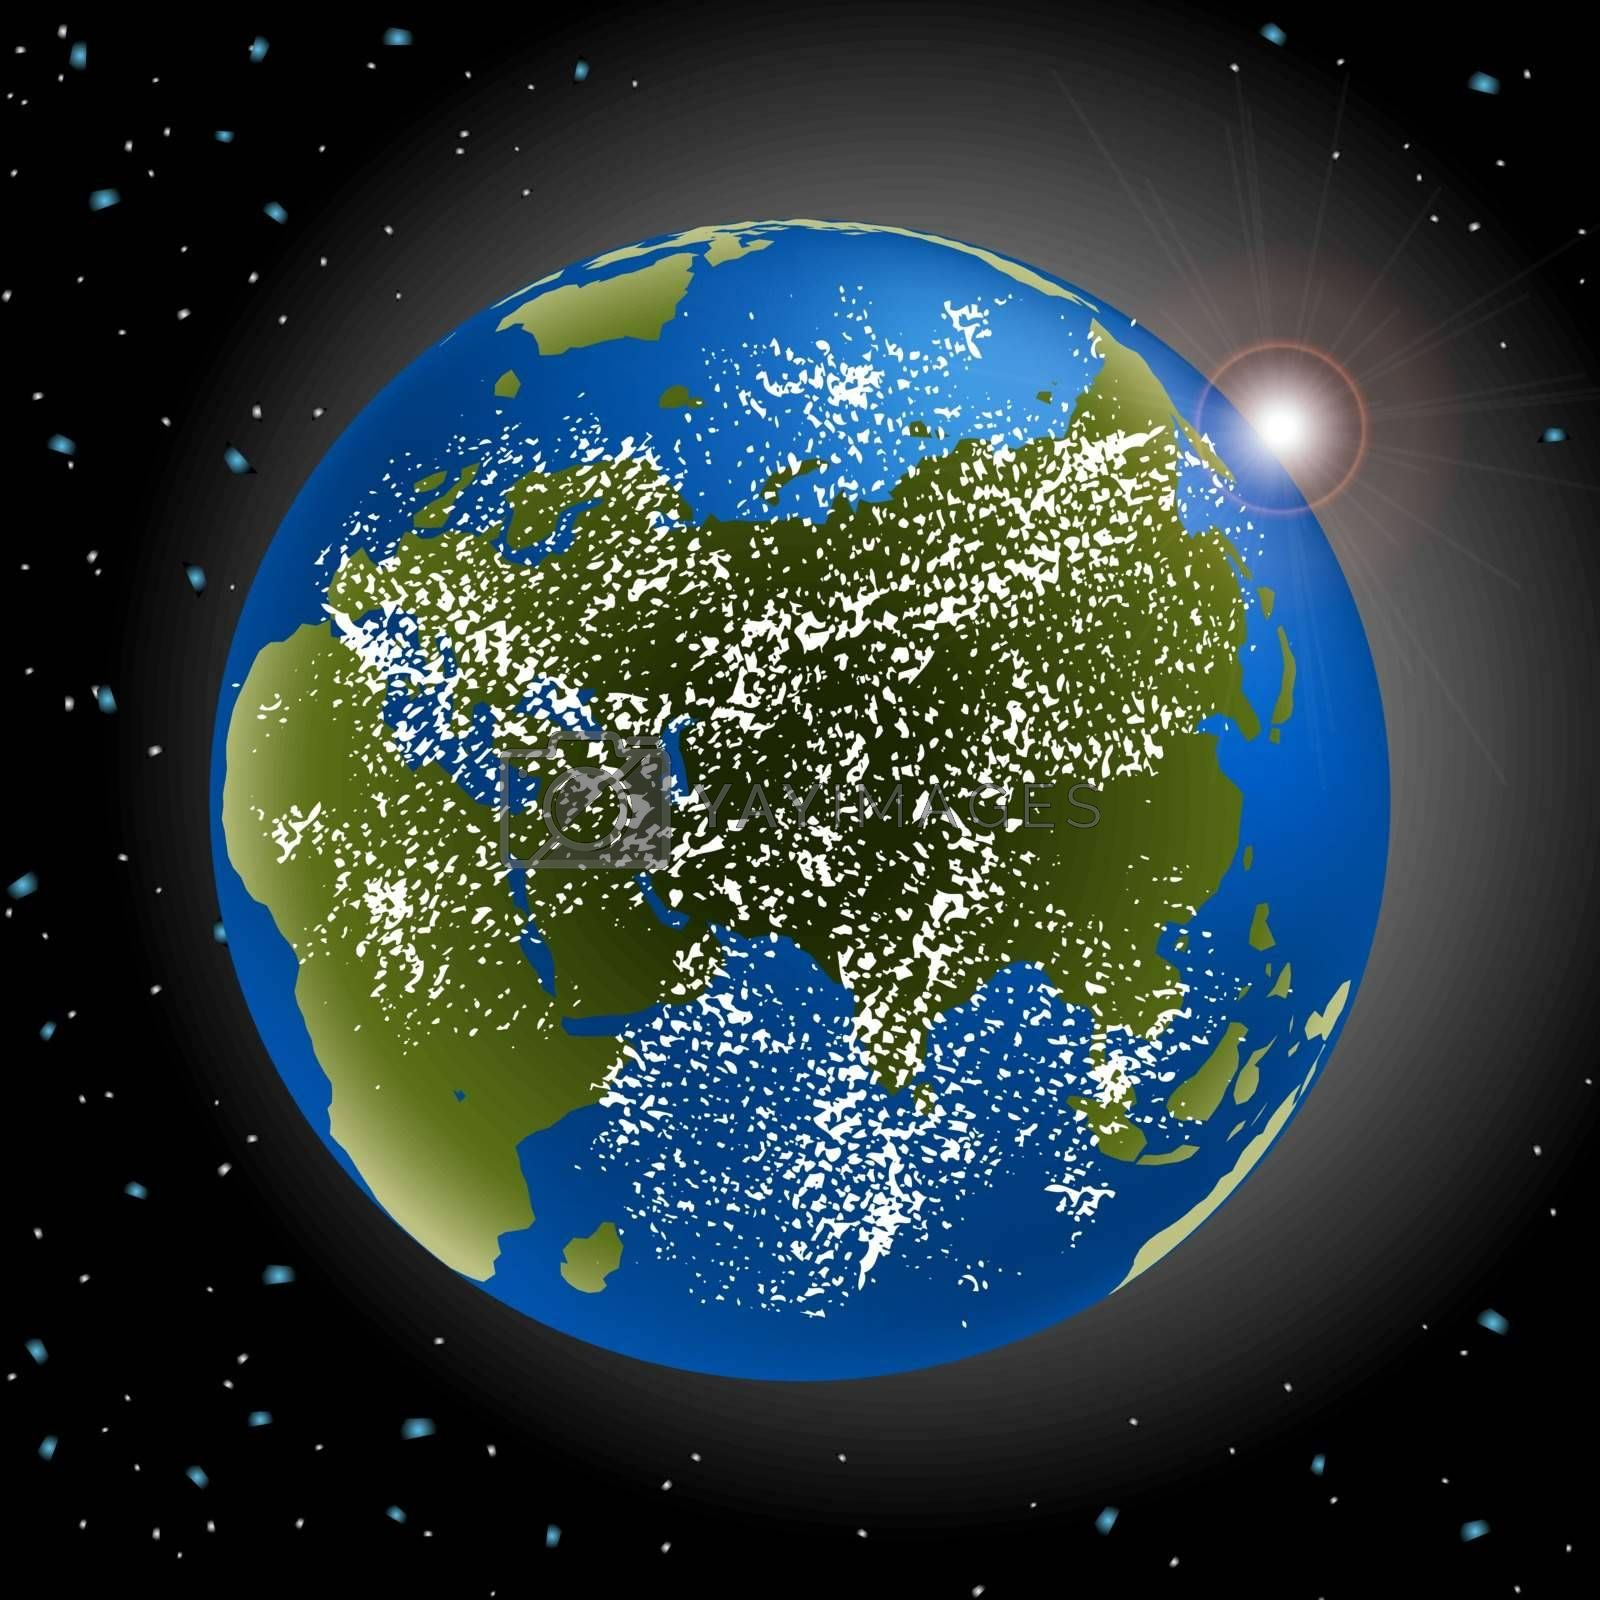 Vector of earth in space with sun rising and clouds EPS 10 vector file included